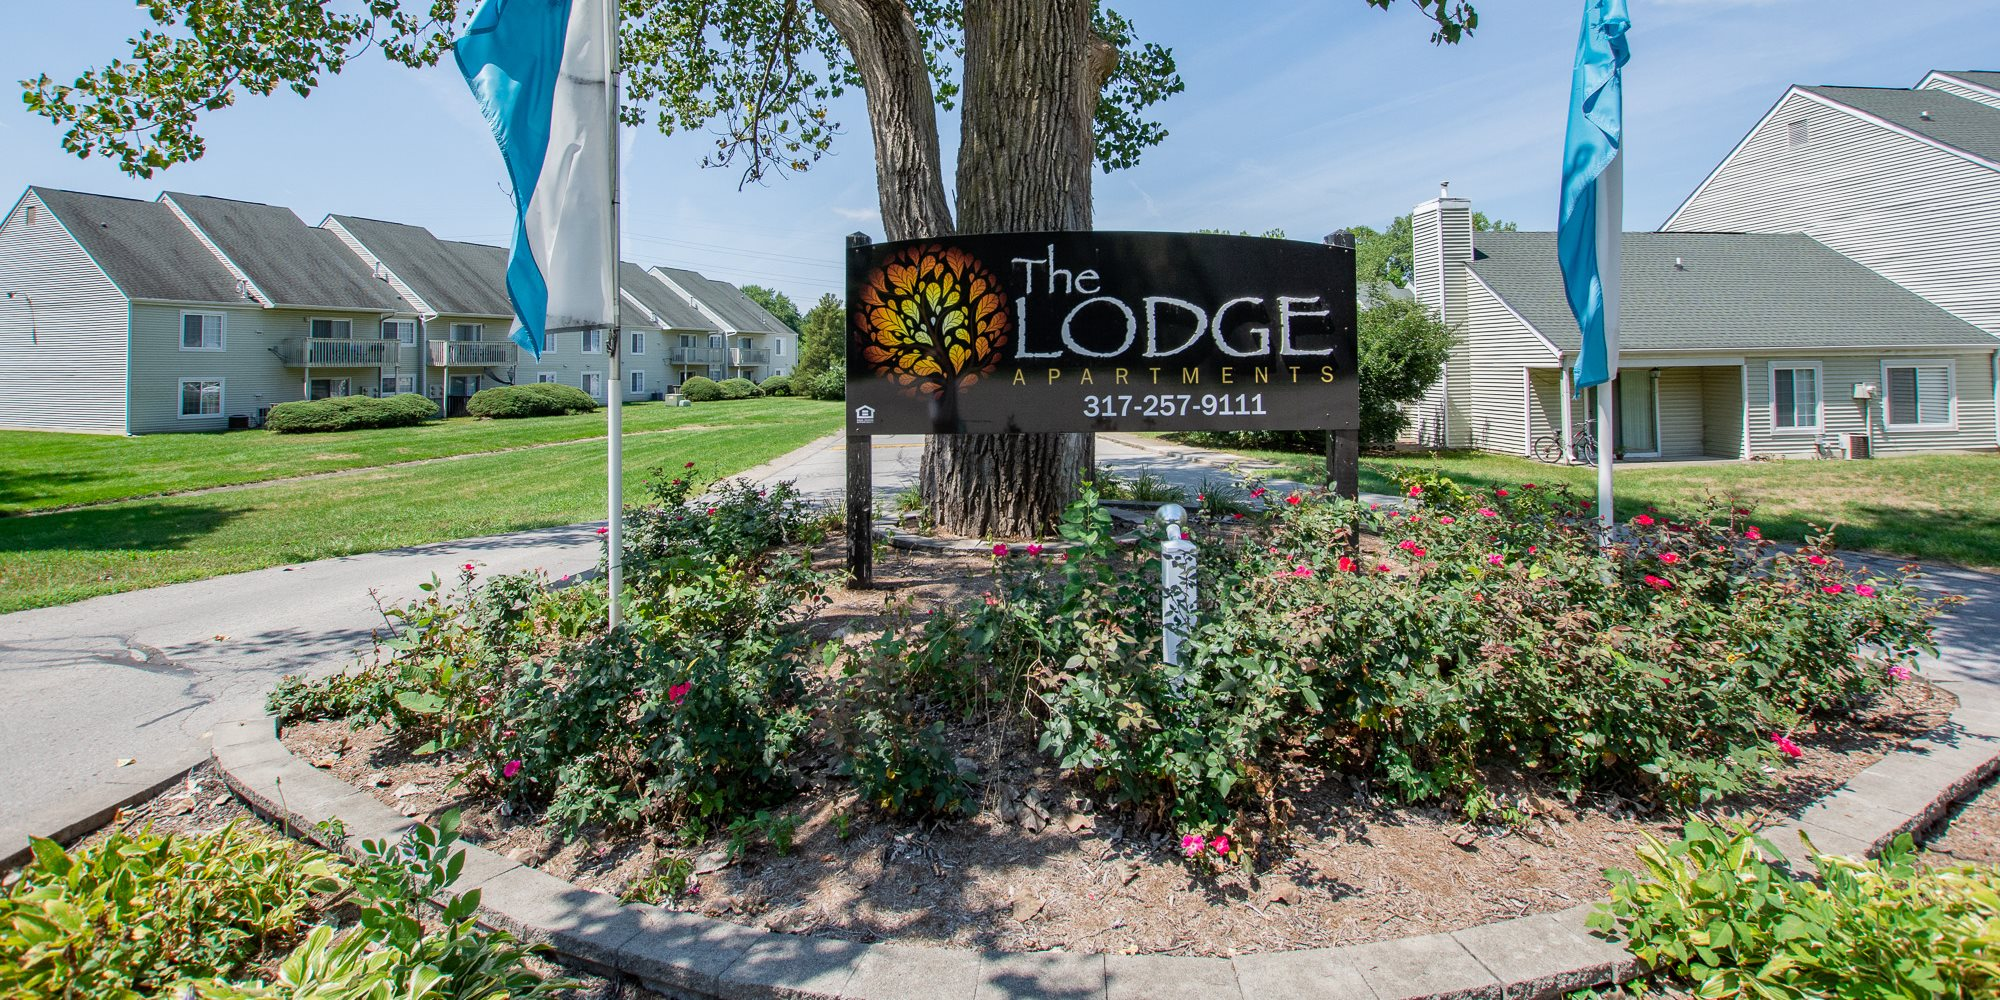 Stupendous The Lodge Apartments Apartments In Indianapolis In Home Interior And Landscaping Oversignezvosmurscom